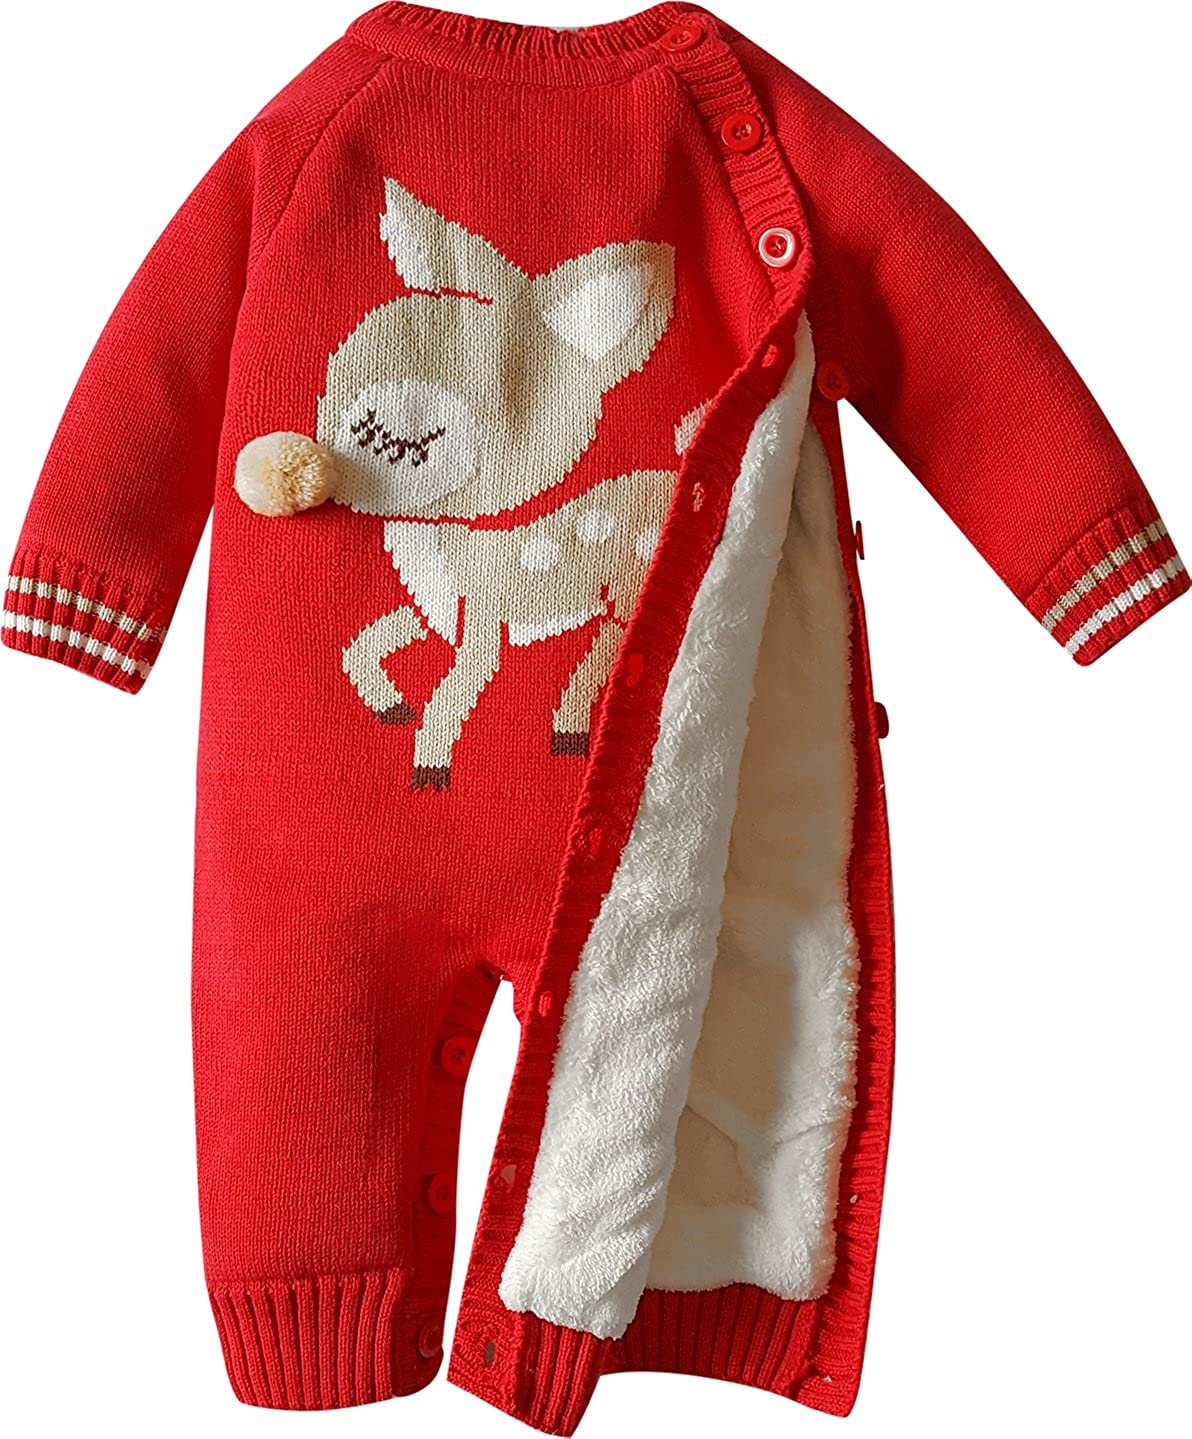 fef37121e ZOEREA Baby Sweater Adorable Pattern Infant Thick Romper Suit 0-18 ...